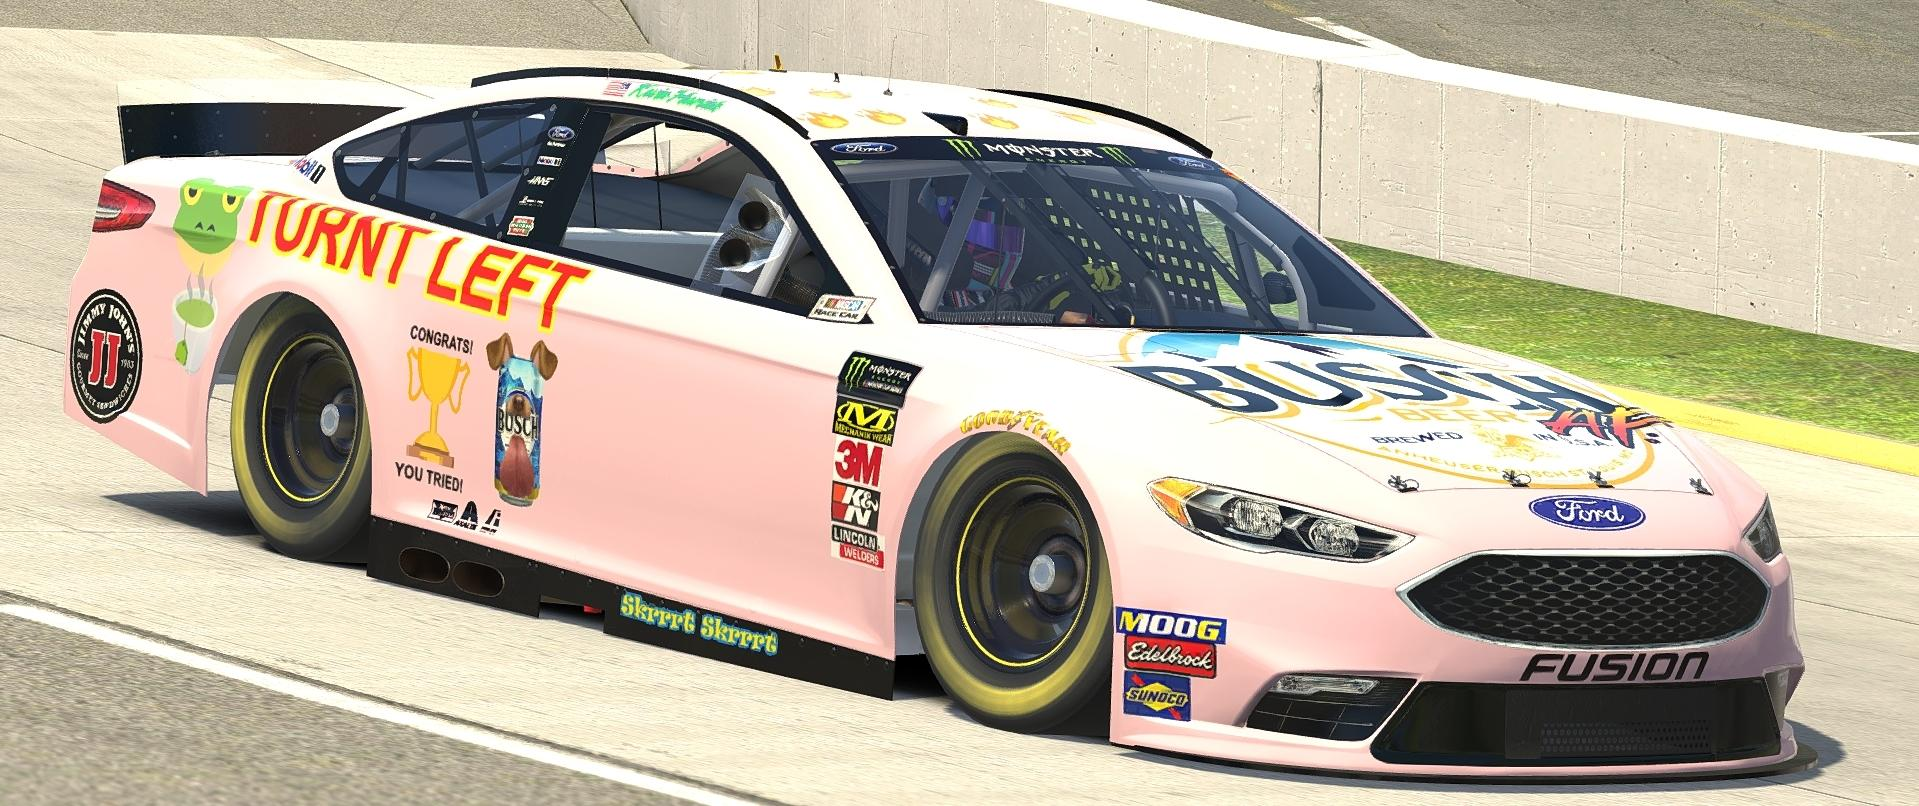 Preview of Kevin Harvick #MillennialCar by Brian C Mullin